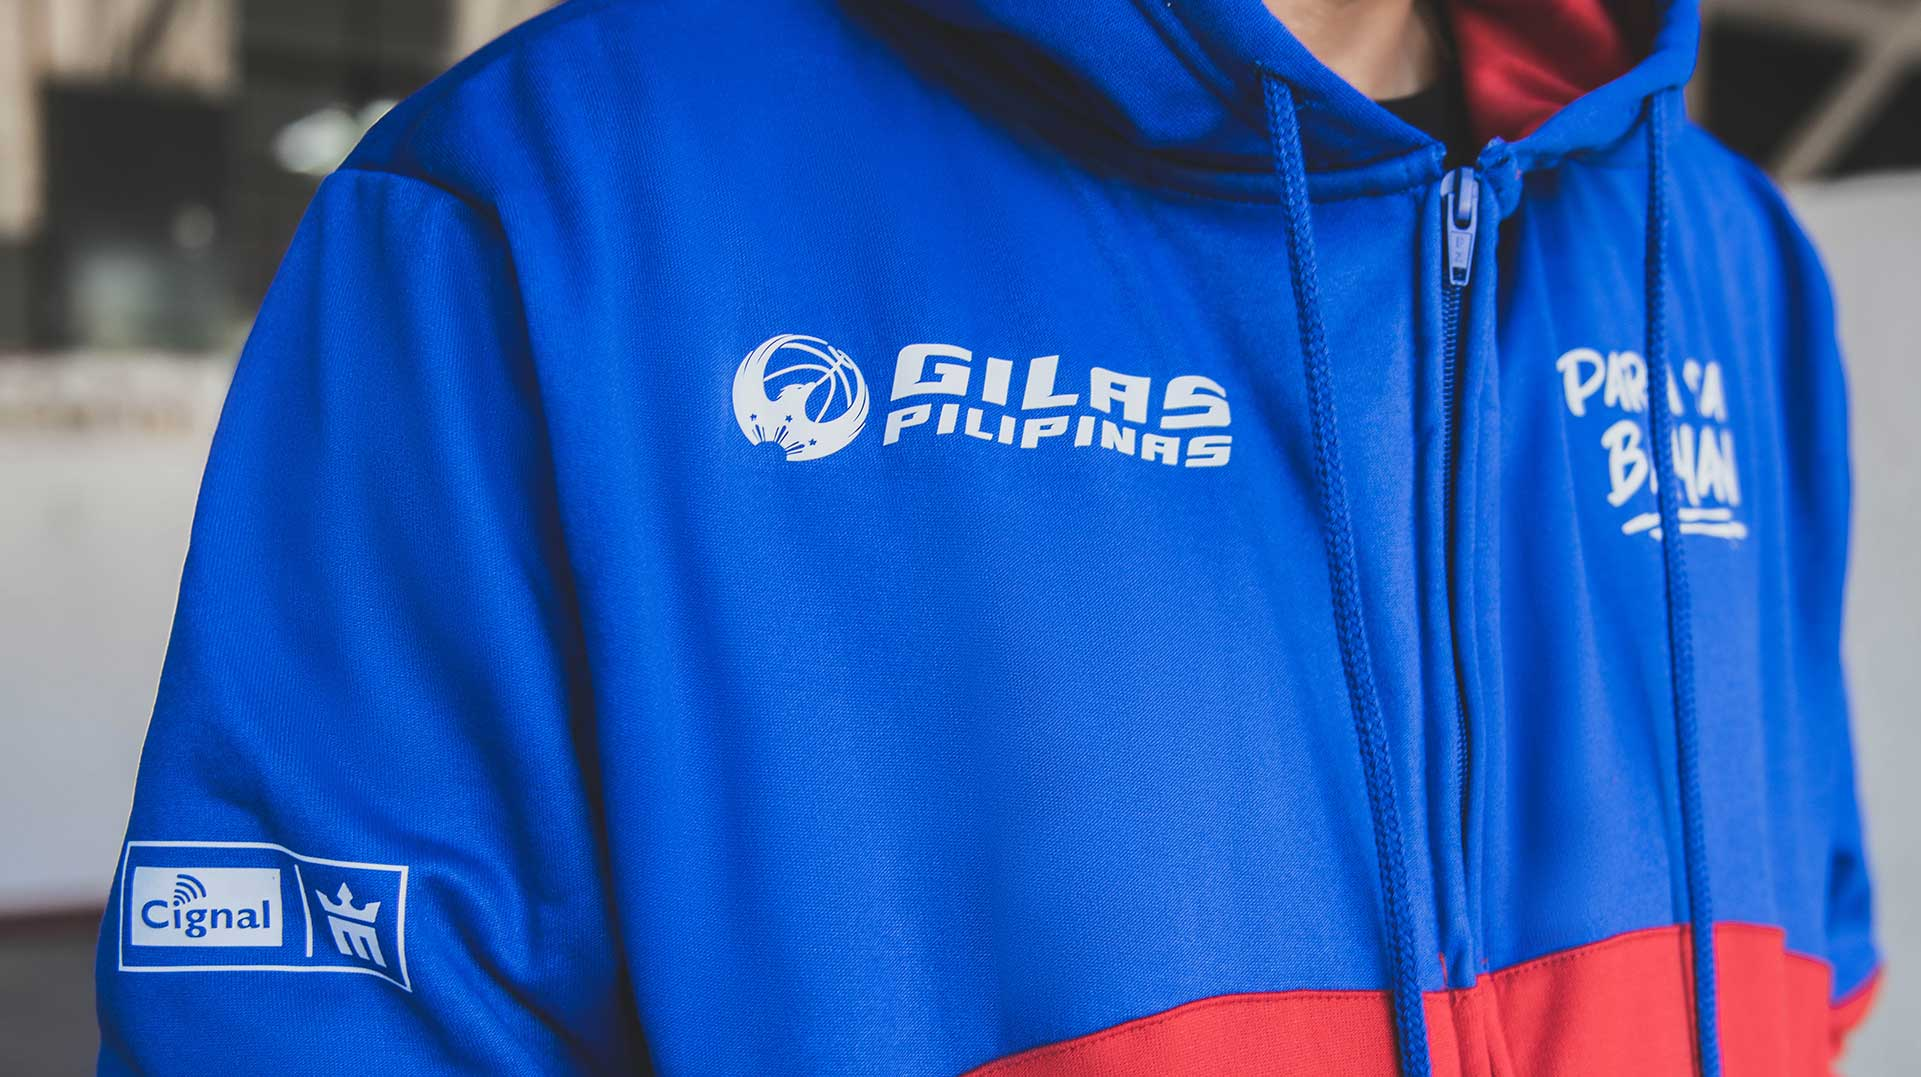 mighty sports GILAS PILIPINAS hoodie banner